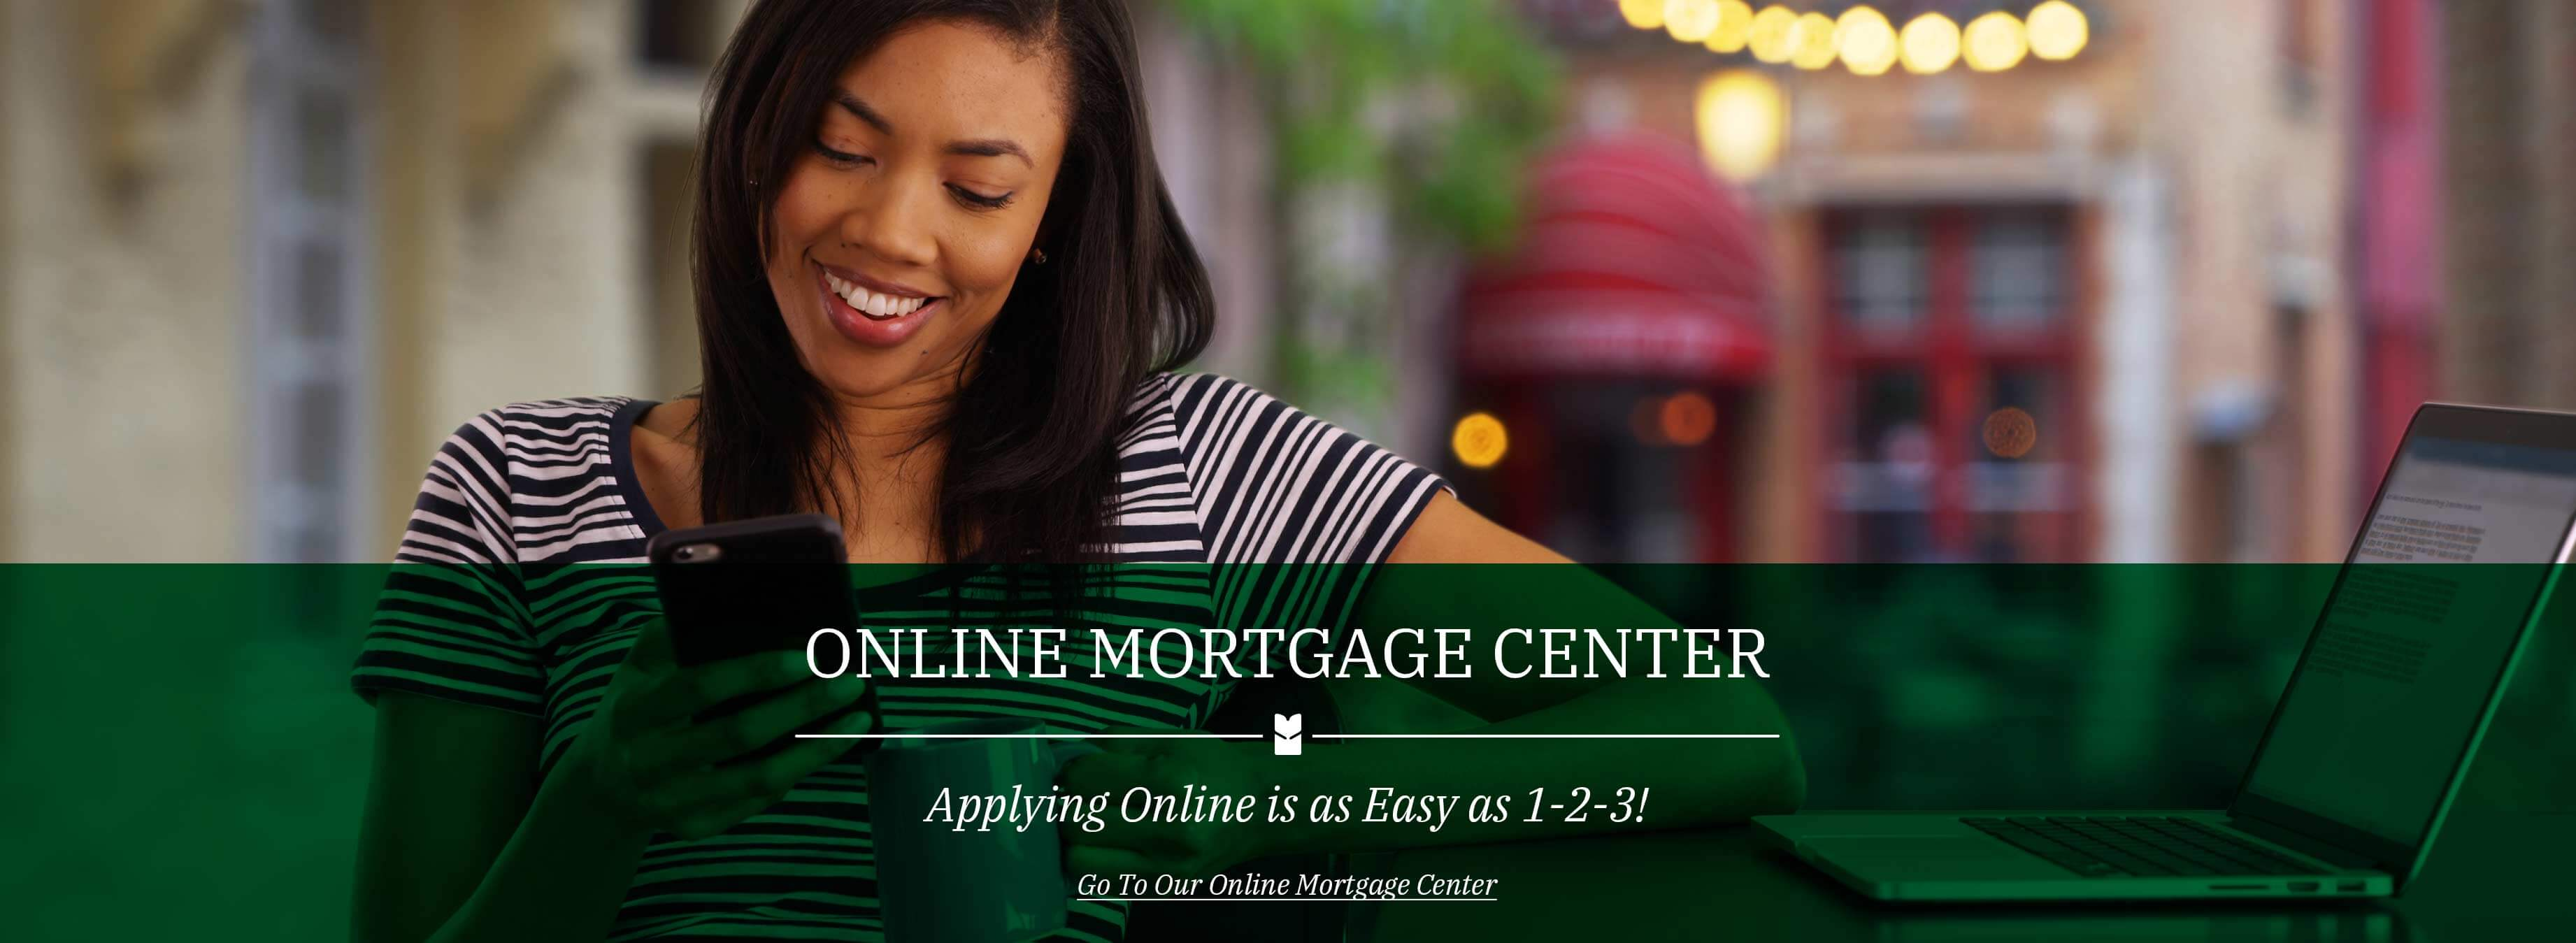 Online Mortgage Center Applying Online is as Easy as 1-2-3!  Go To Our Online Mortgage Center